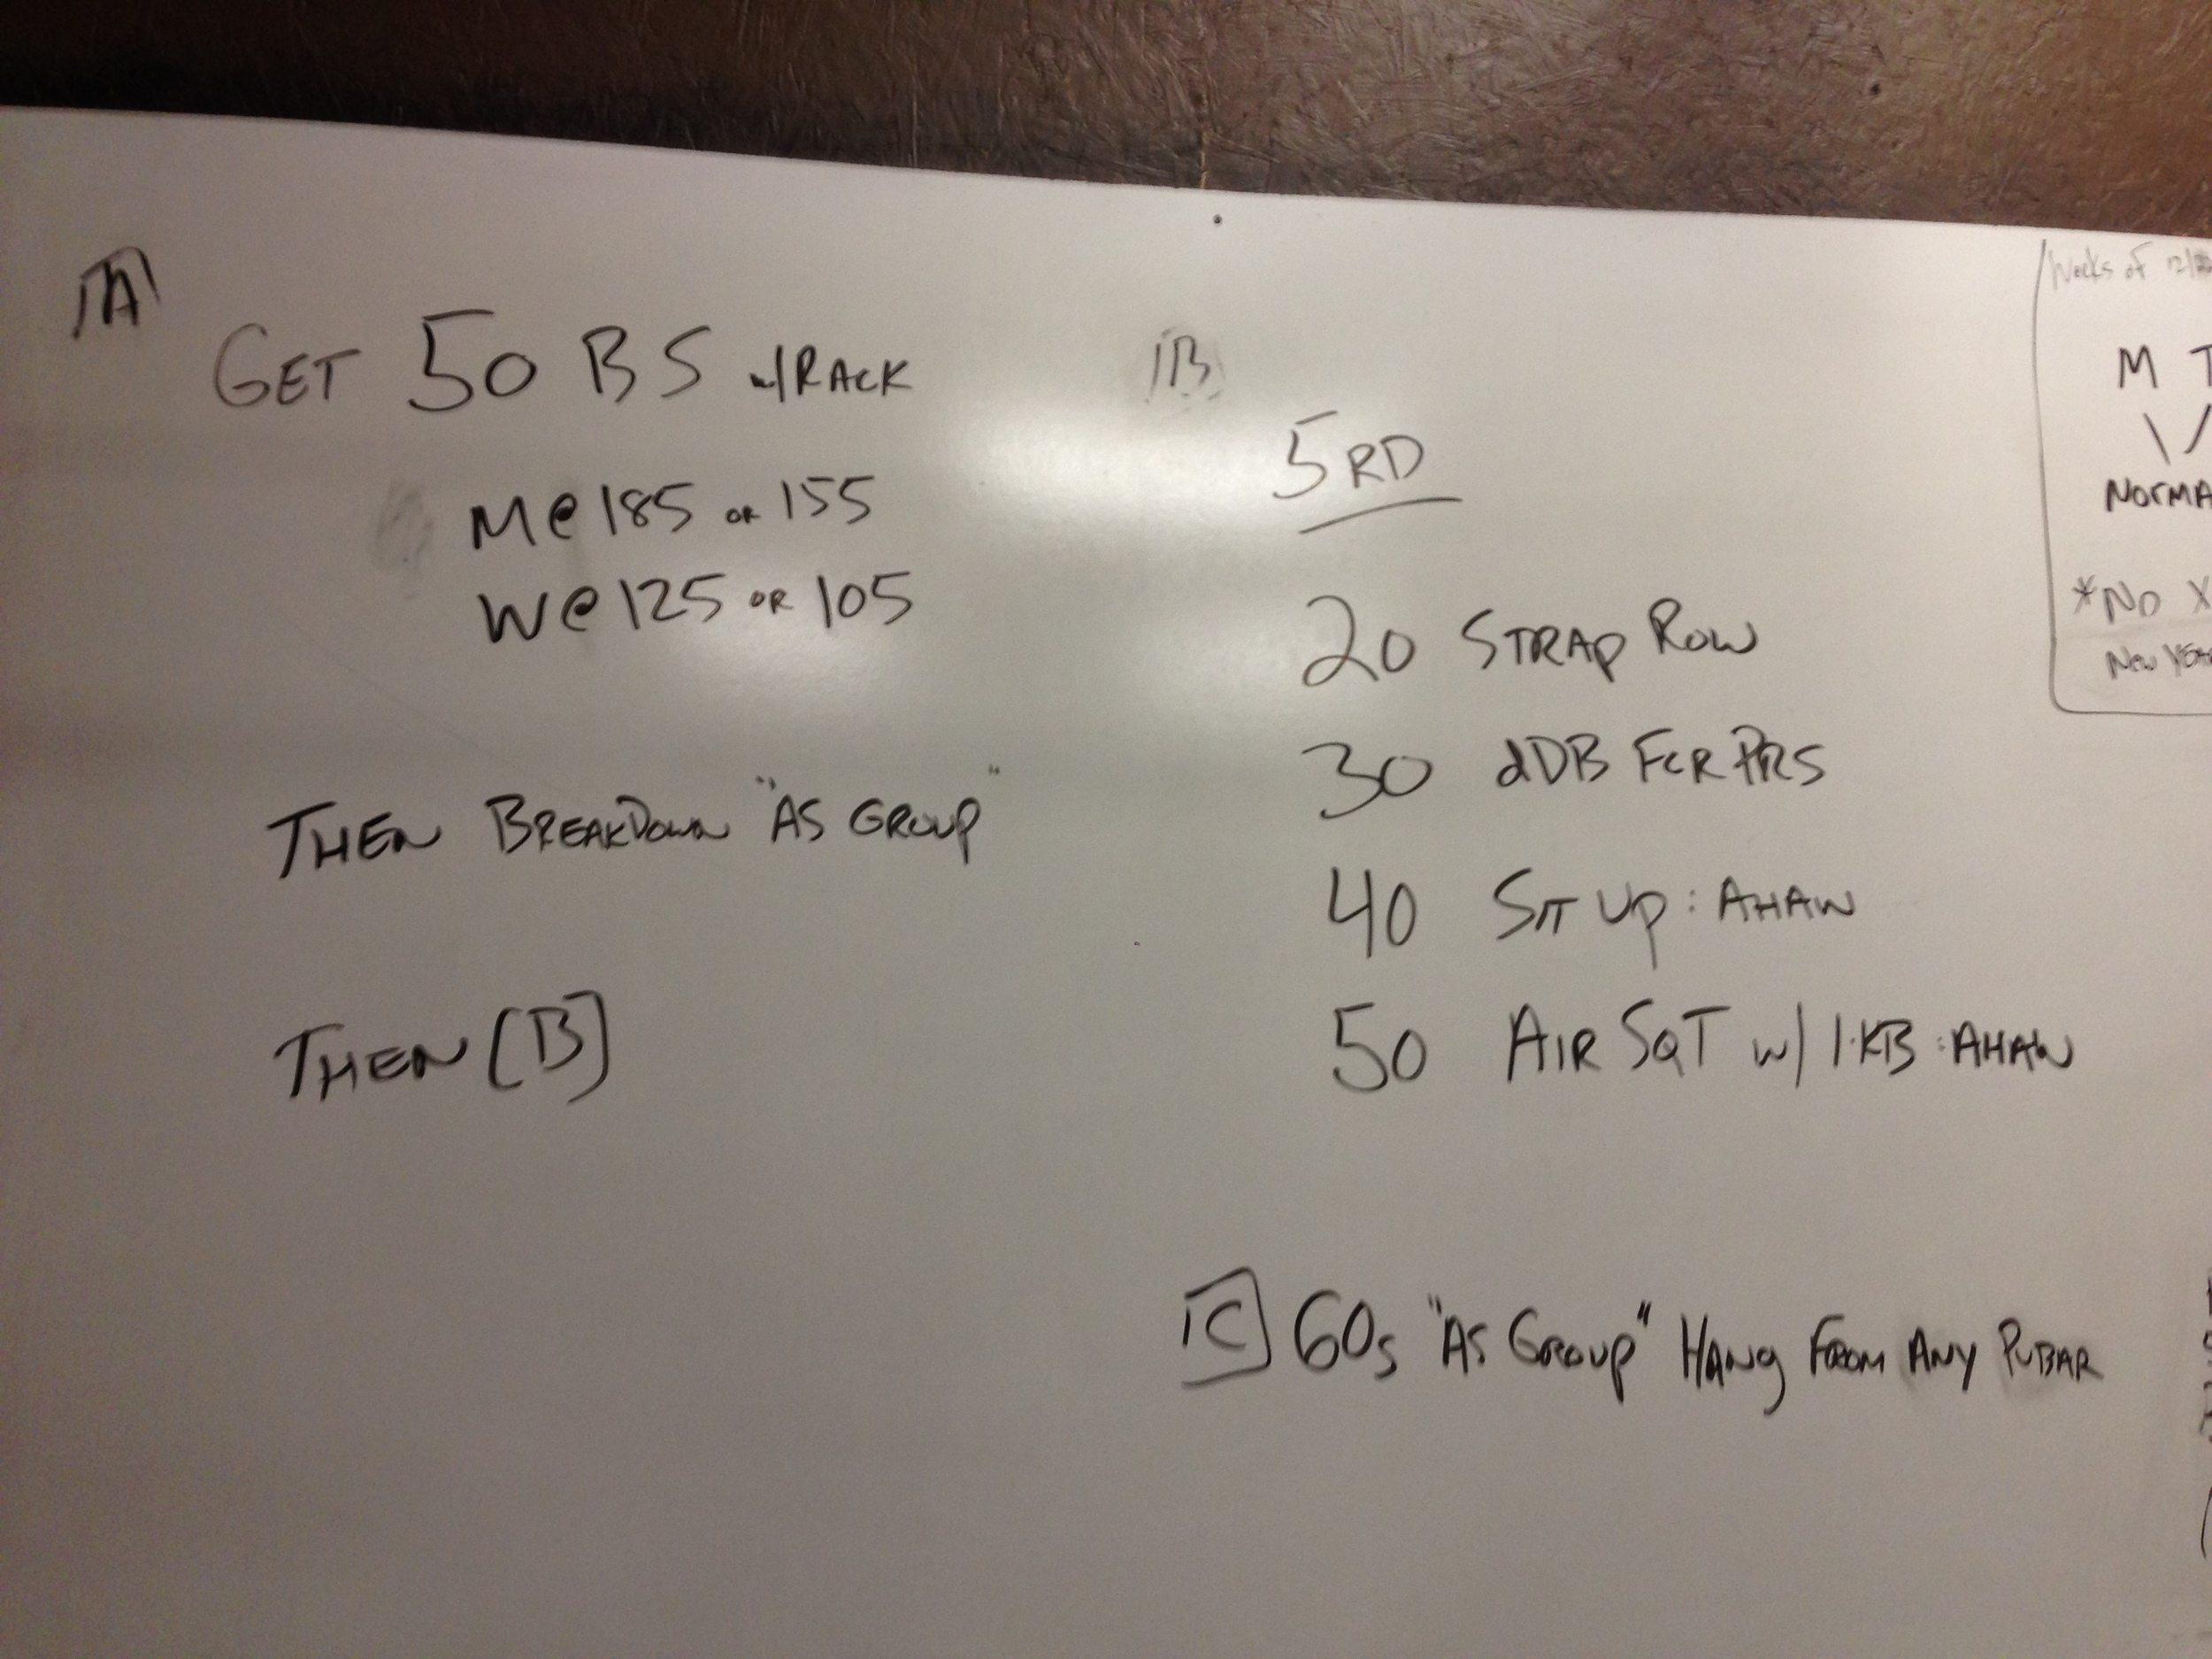 The fantabulous Christmas Eve workout - turns out 50 is a large number.